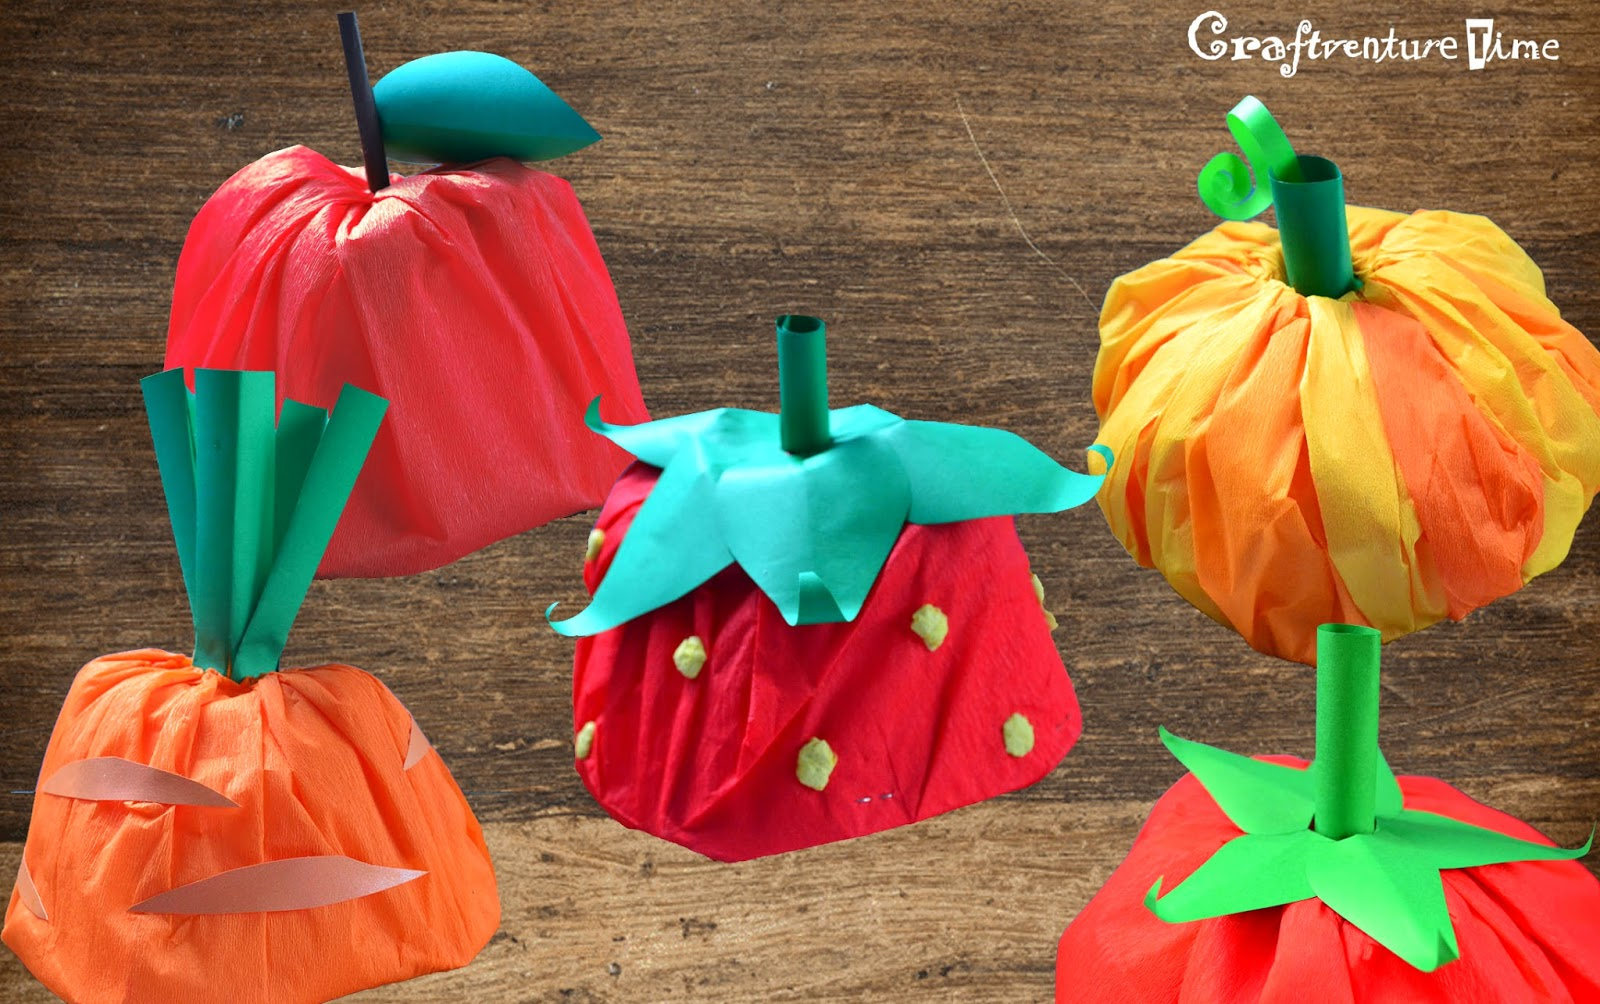 craftventure time diy fruit and veggies hats from paper boat part ii